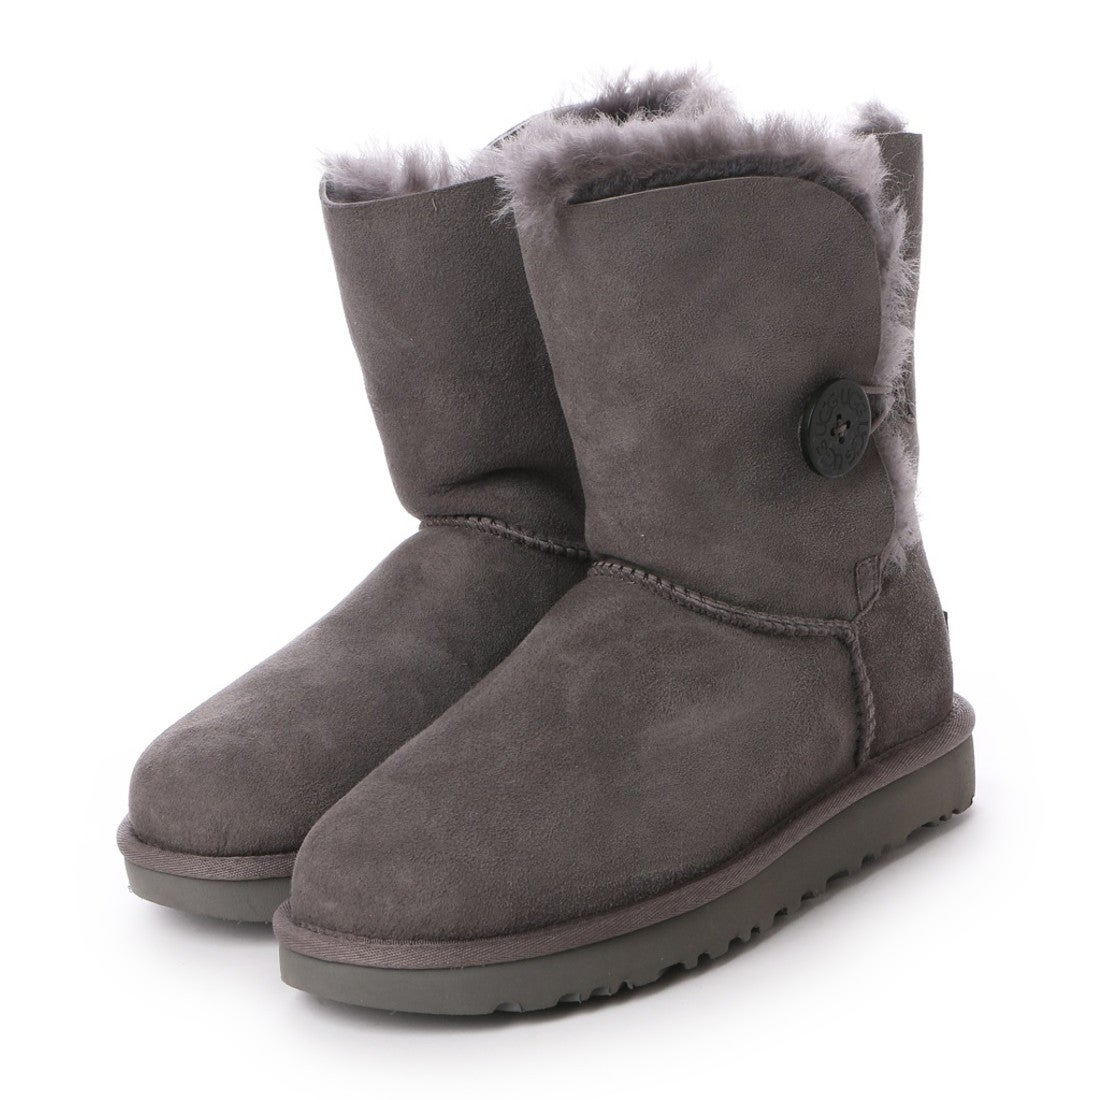 【SALE 30%OFF】アグ UGG Bailey Button II (Grey) レディース